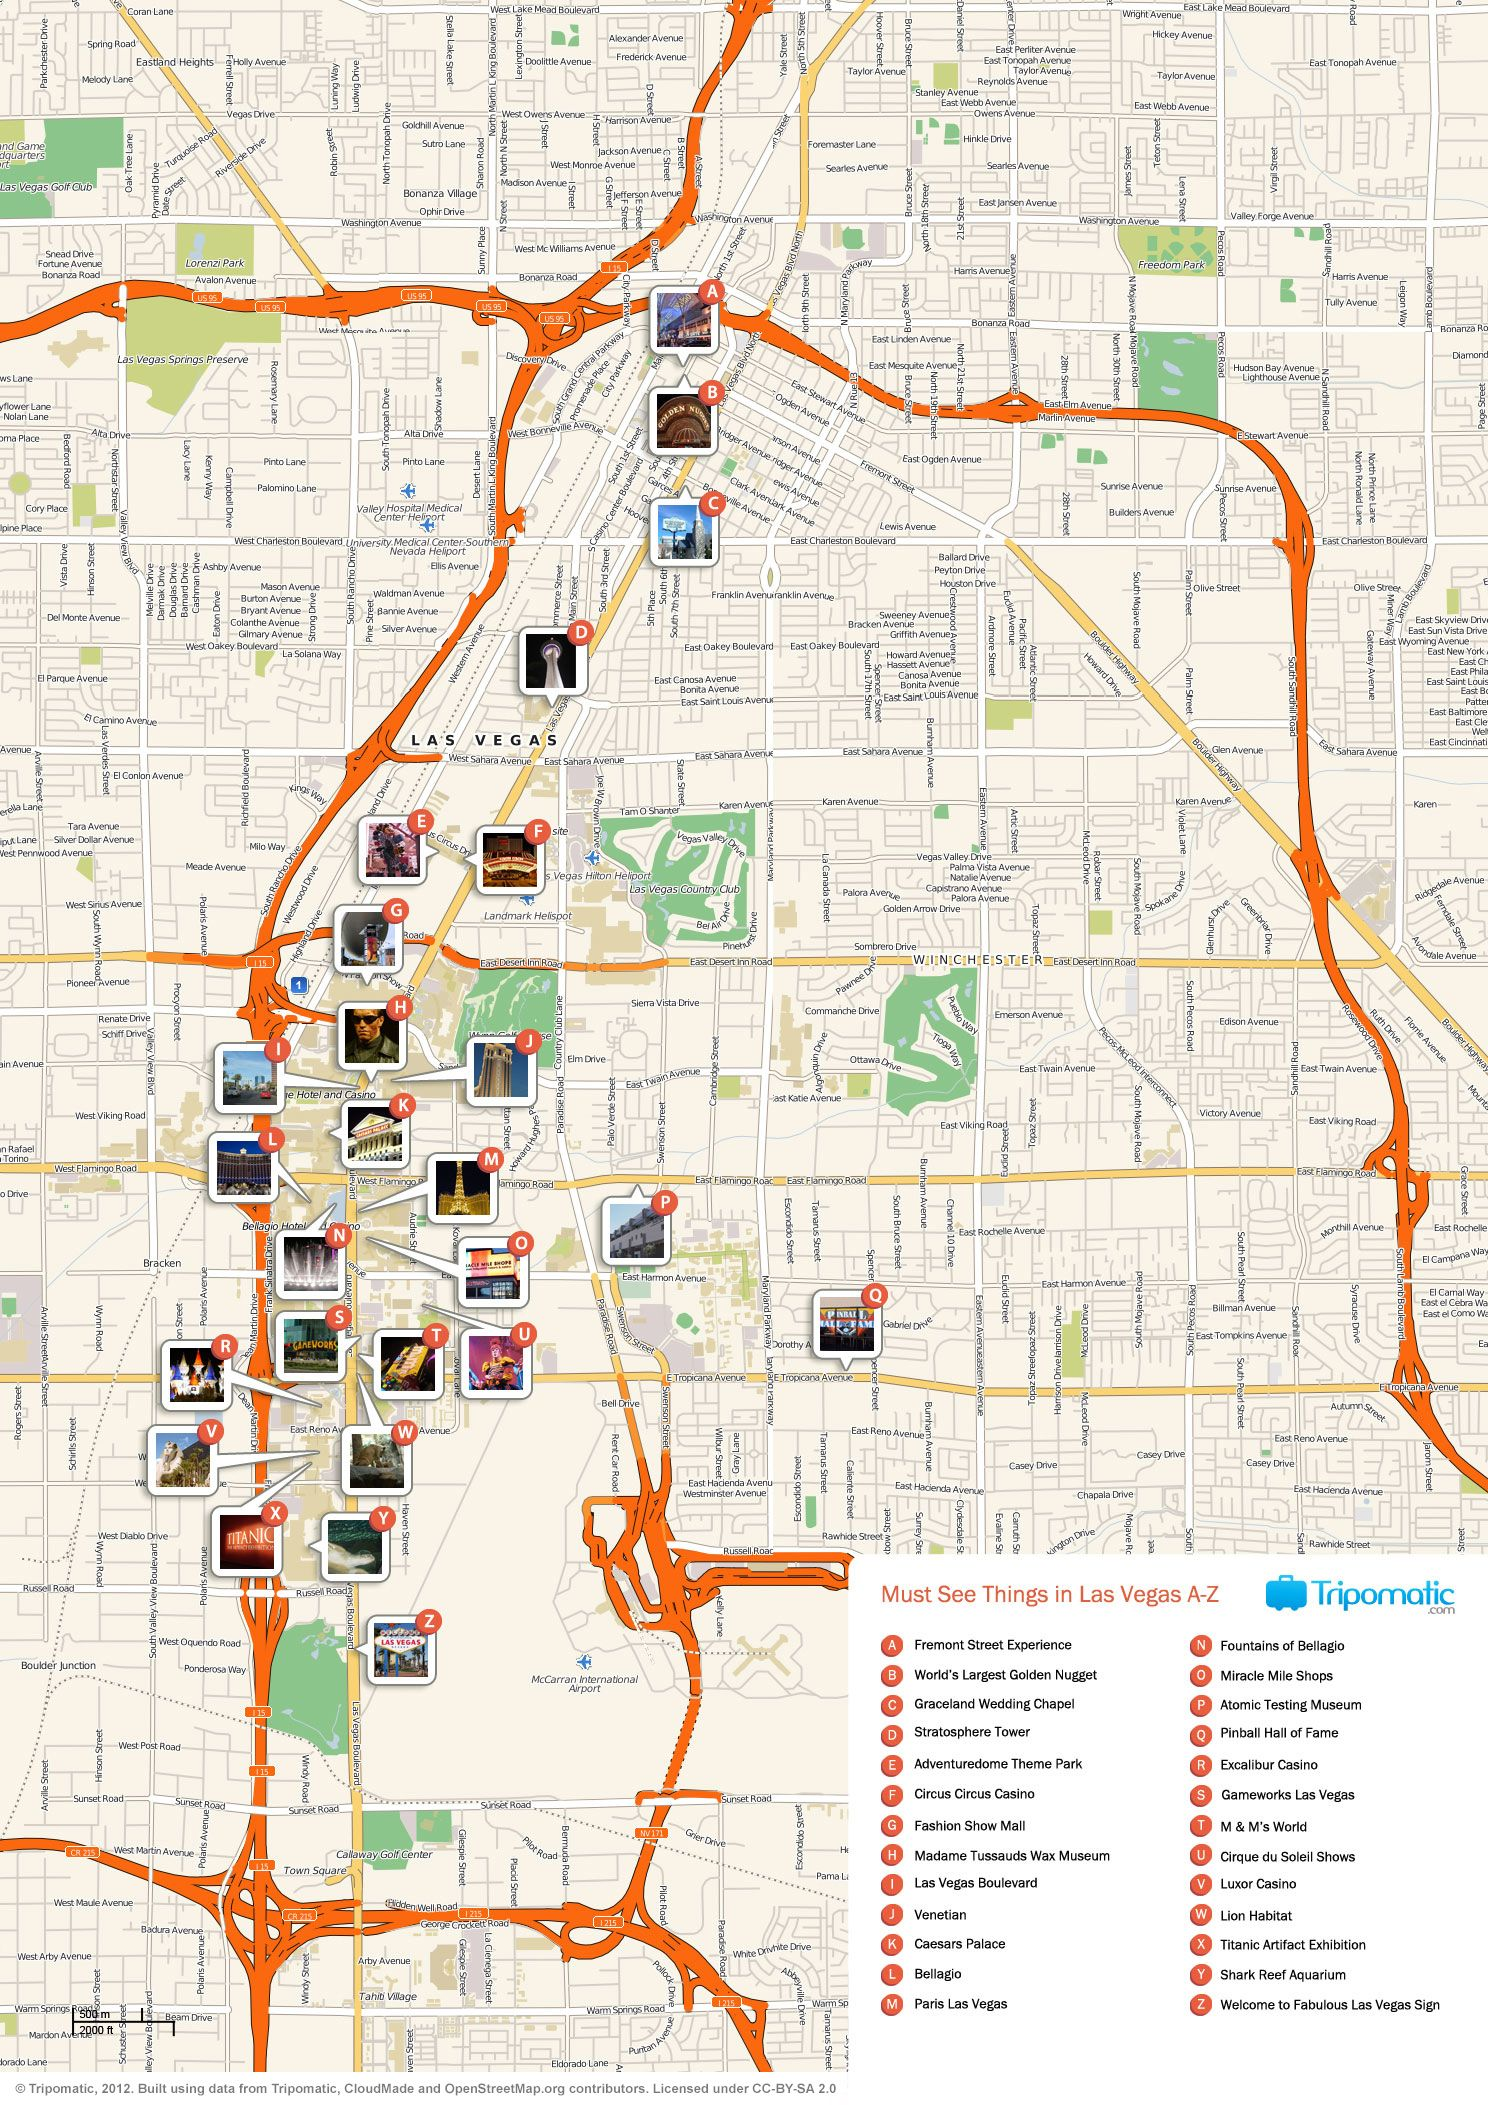 Pictures Of Las Vegas Attractions Map Of Las Vegas Attractions - Las vegas nevada usa map